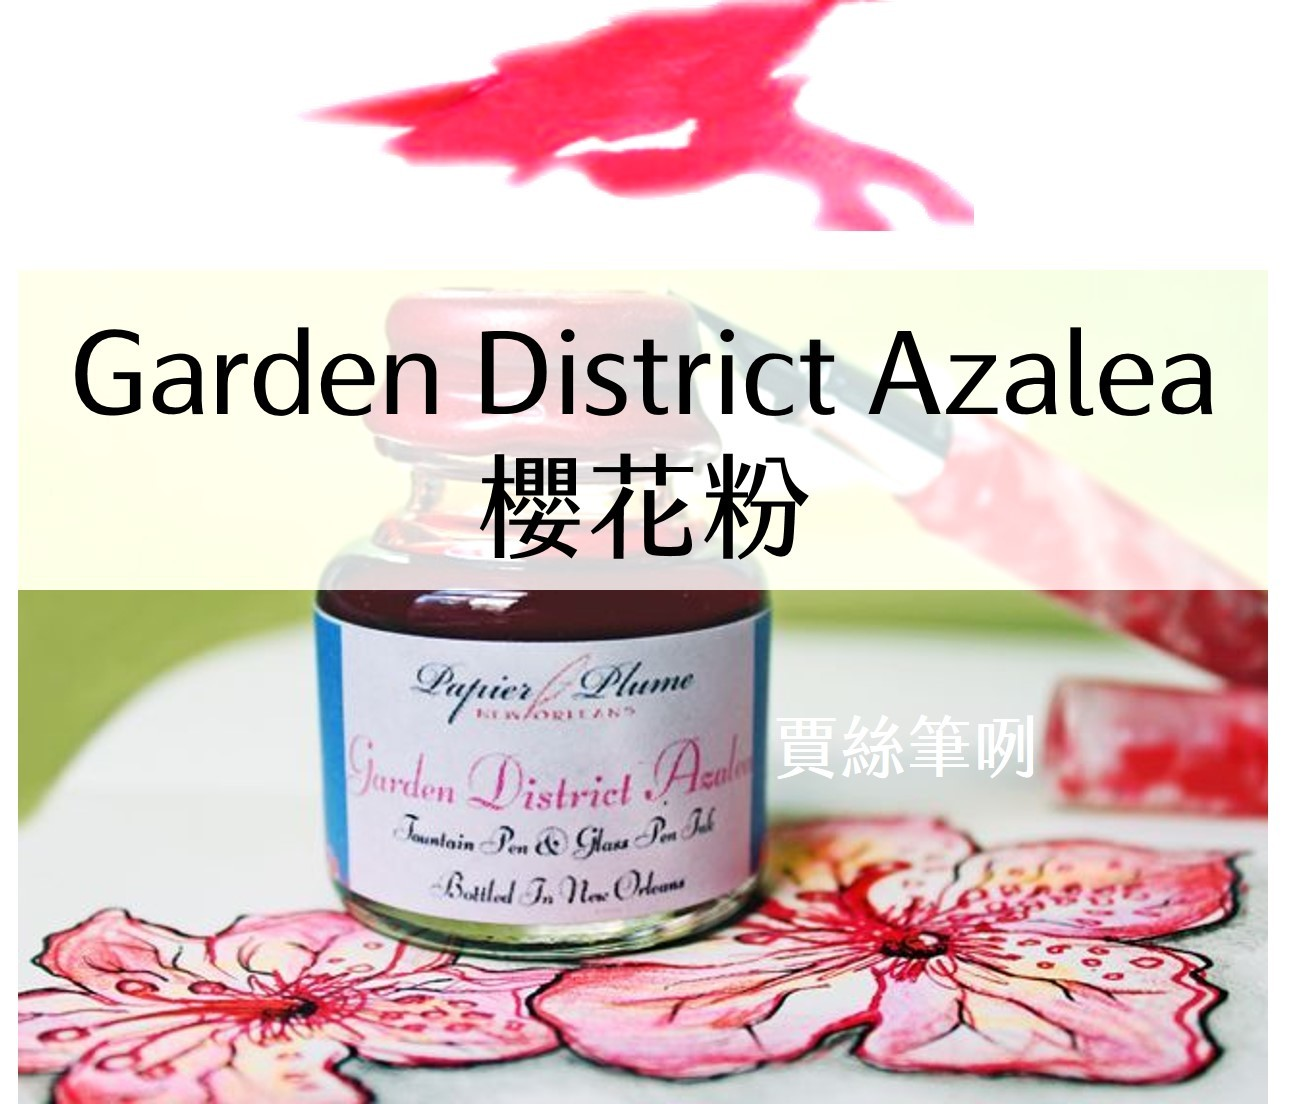 NO - Garden District Azalea 櫻花粉.jpg